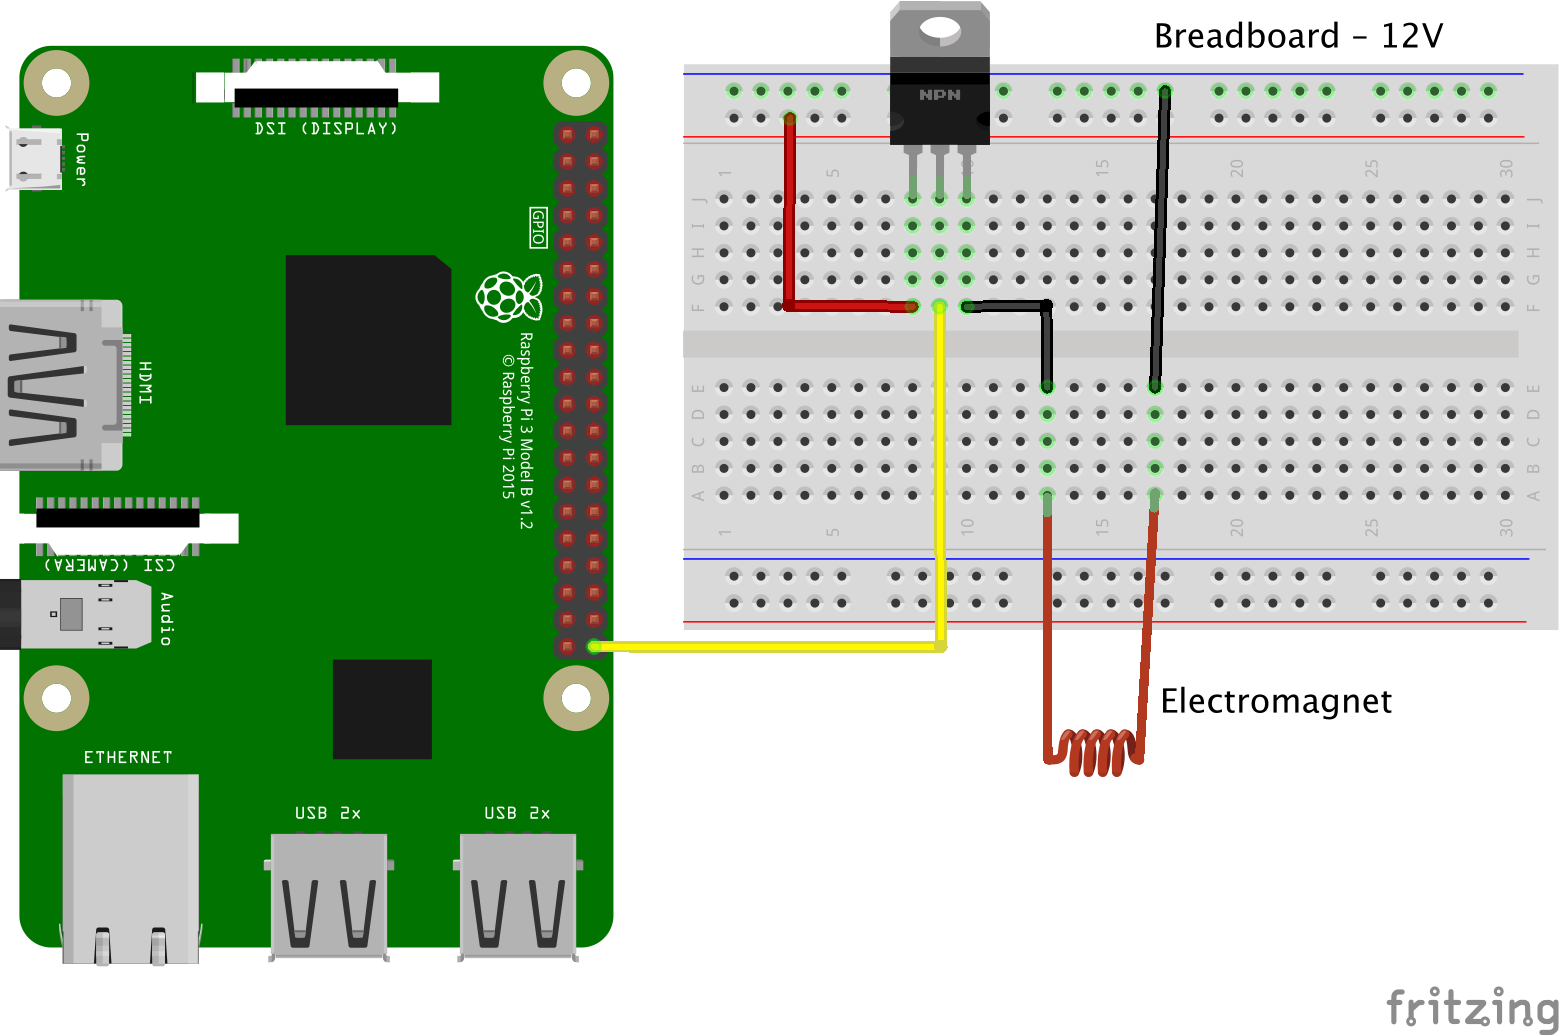 Circuit diagram of the electromagnet connected to the Raspberry Pi.